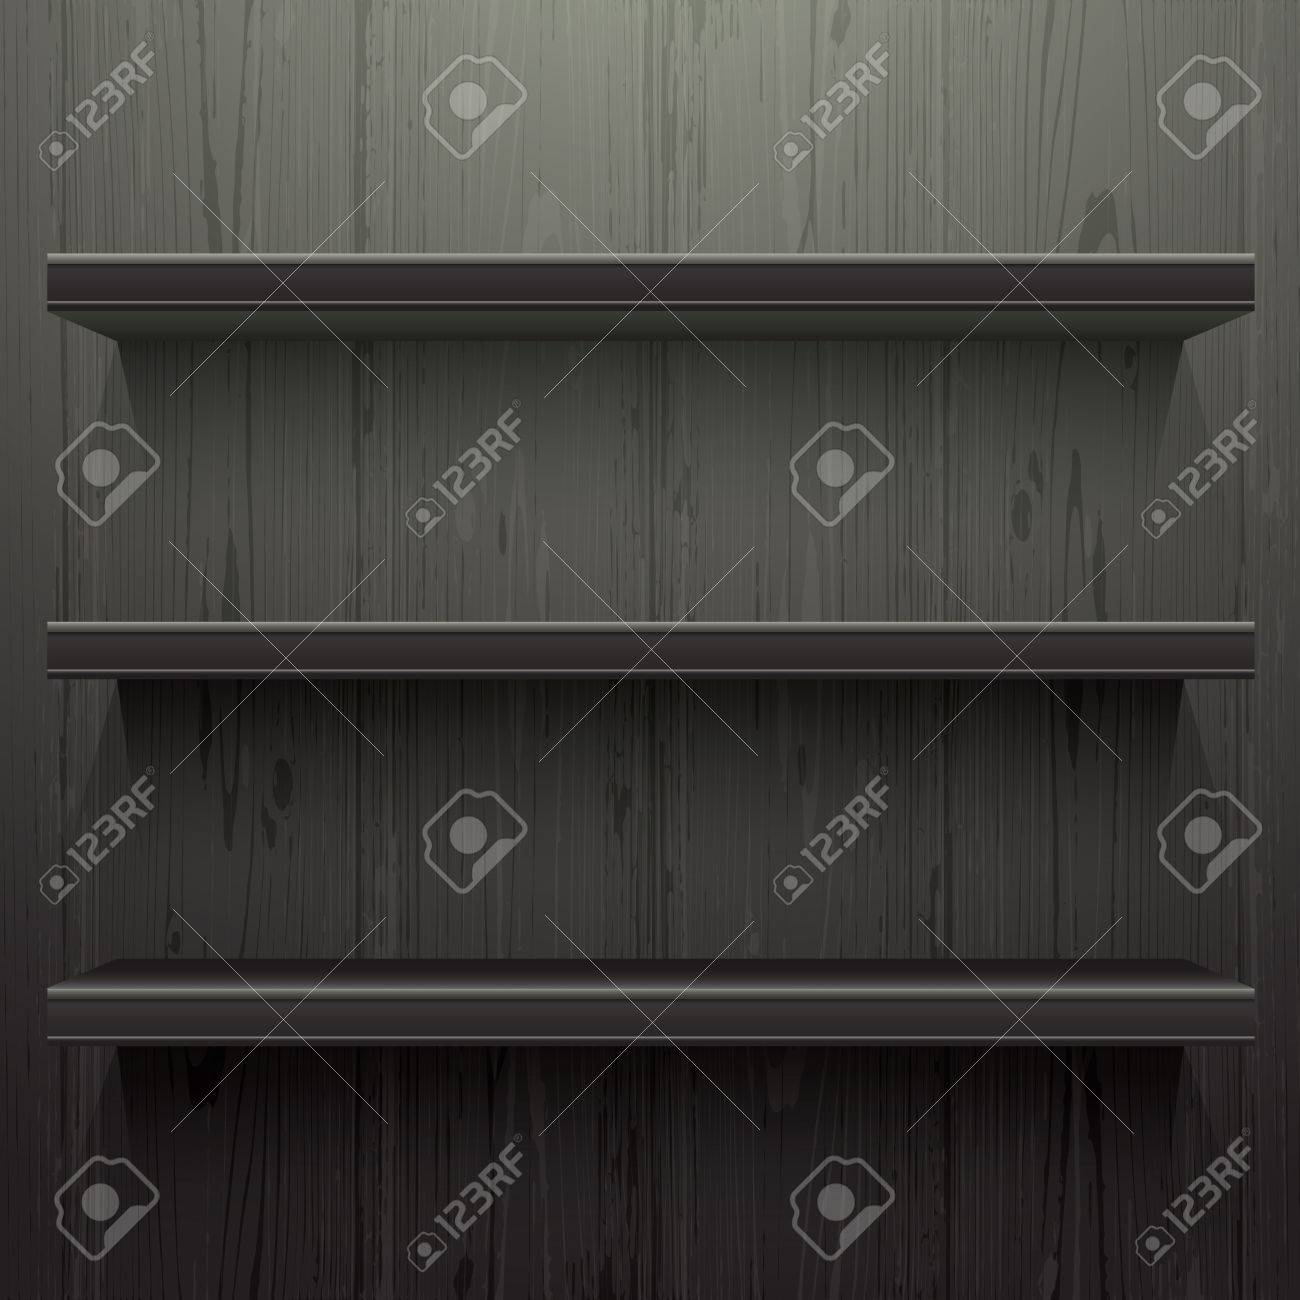 Merveilleux Dark Wood Background Shelves With Light From The Top Stock Vector   44118212